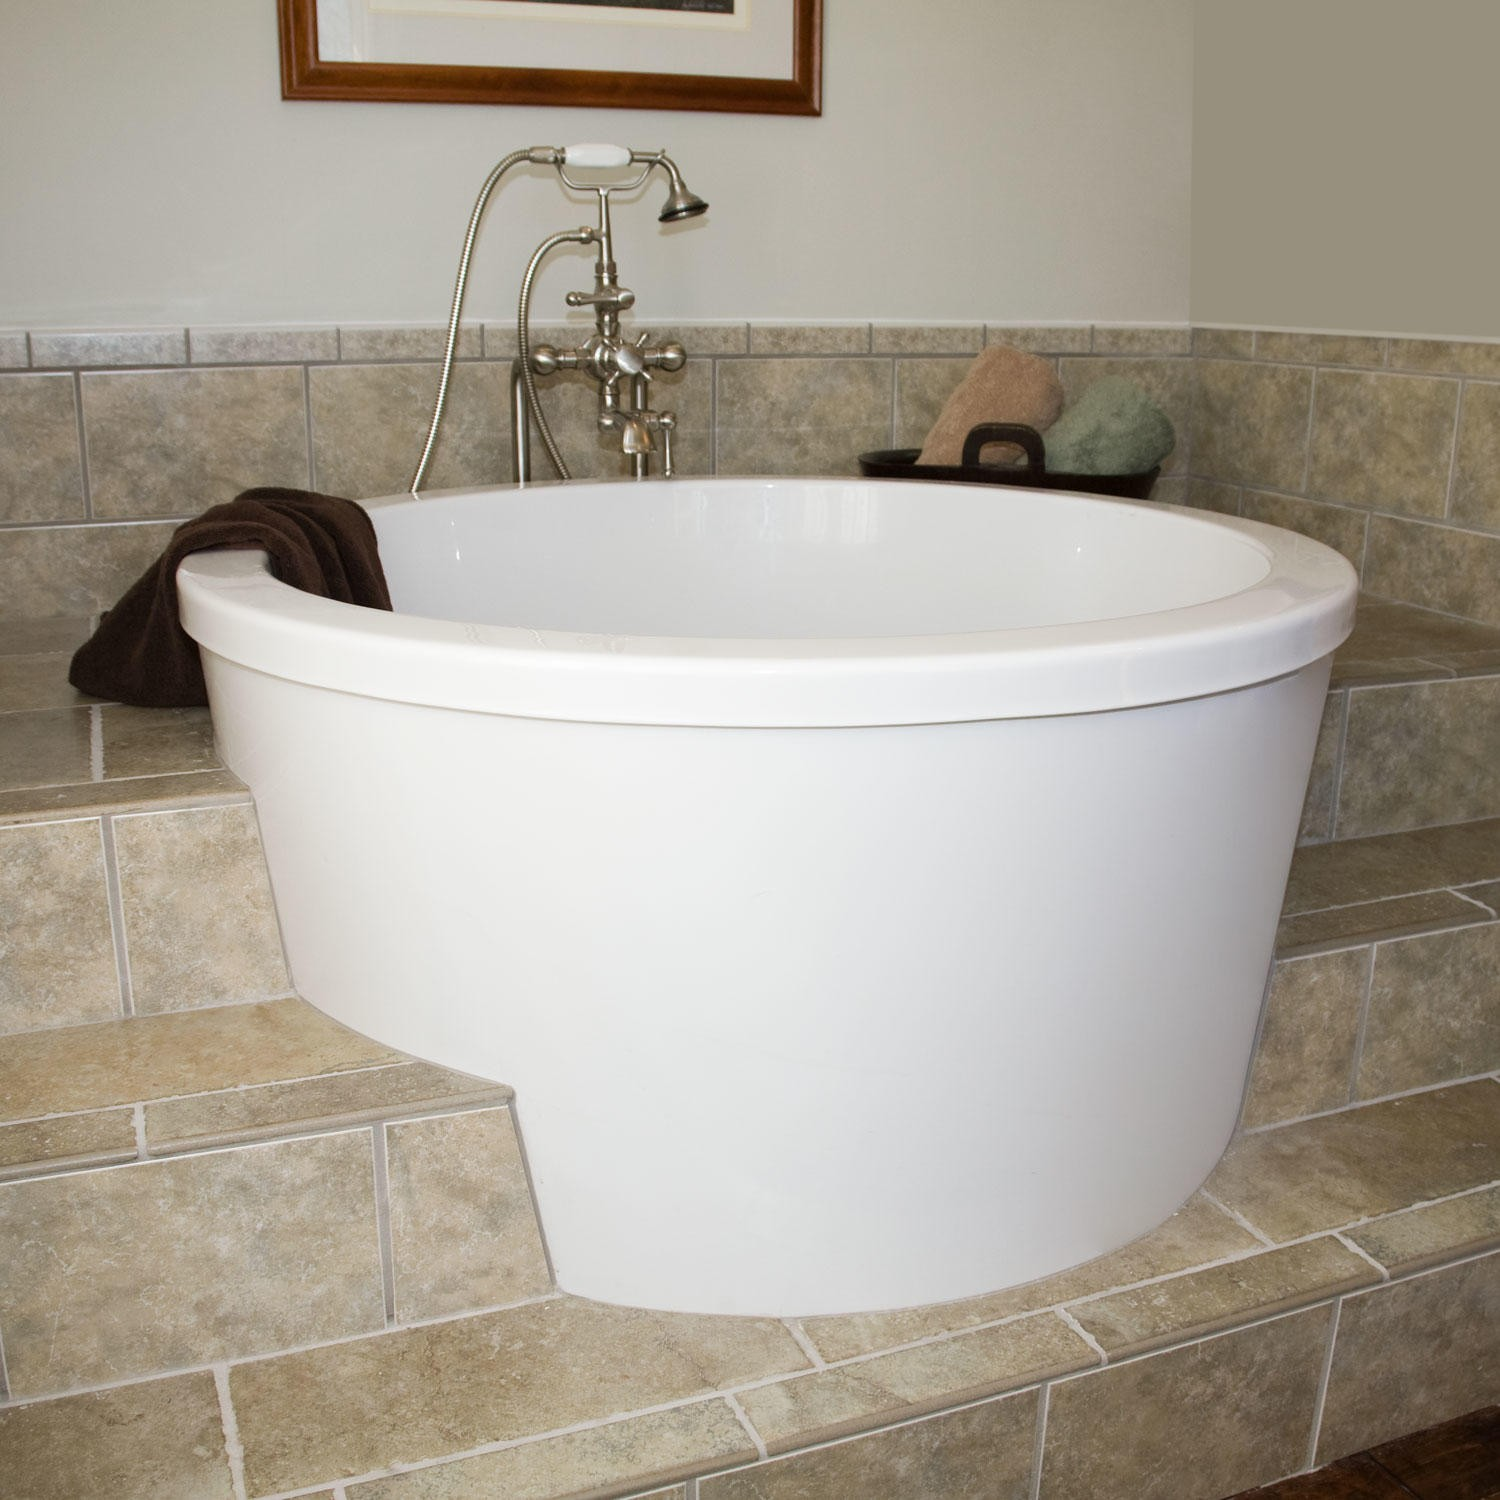 Small soaker tub ideas square japanese soaking tub small for Bathroom ideas with soaker tubs